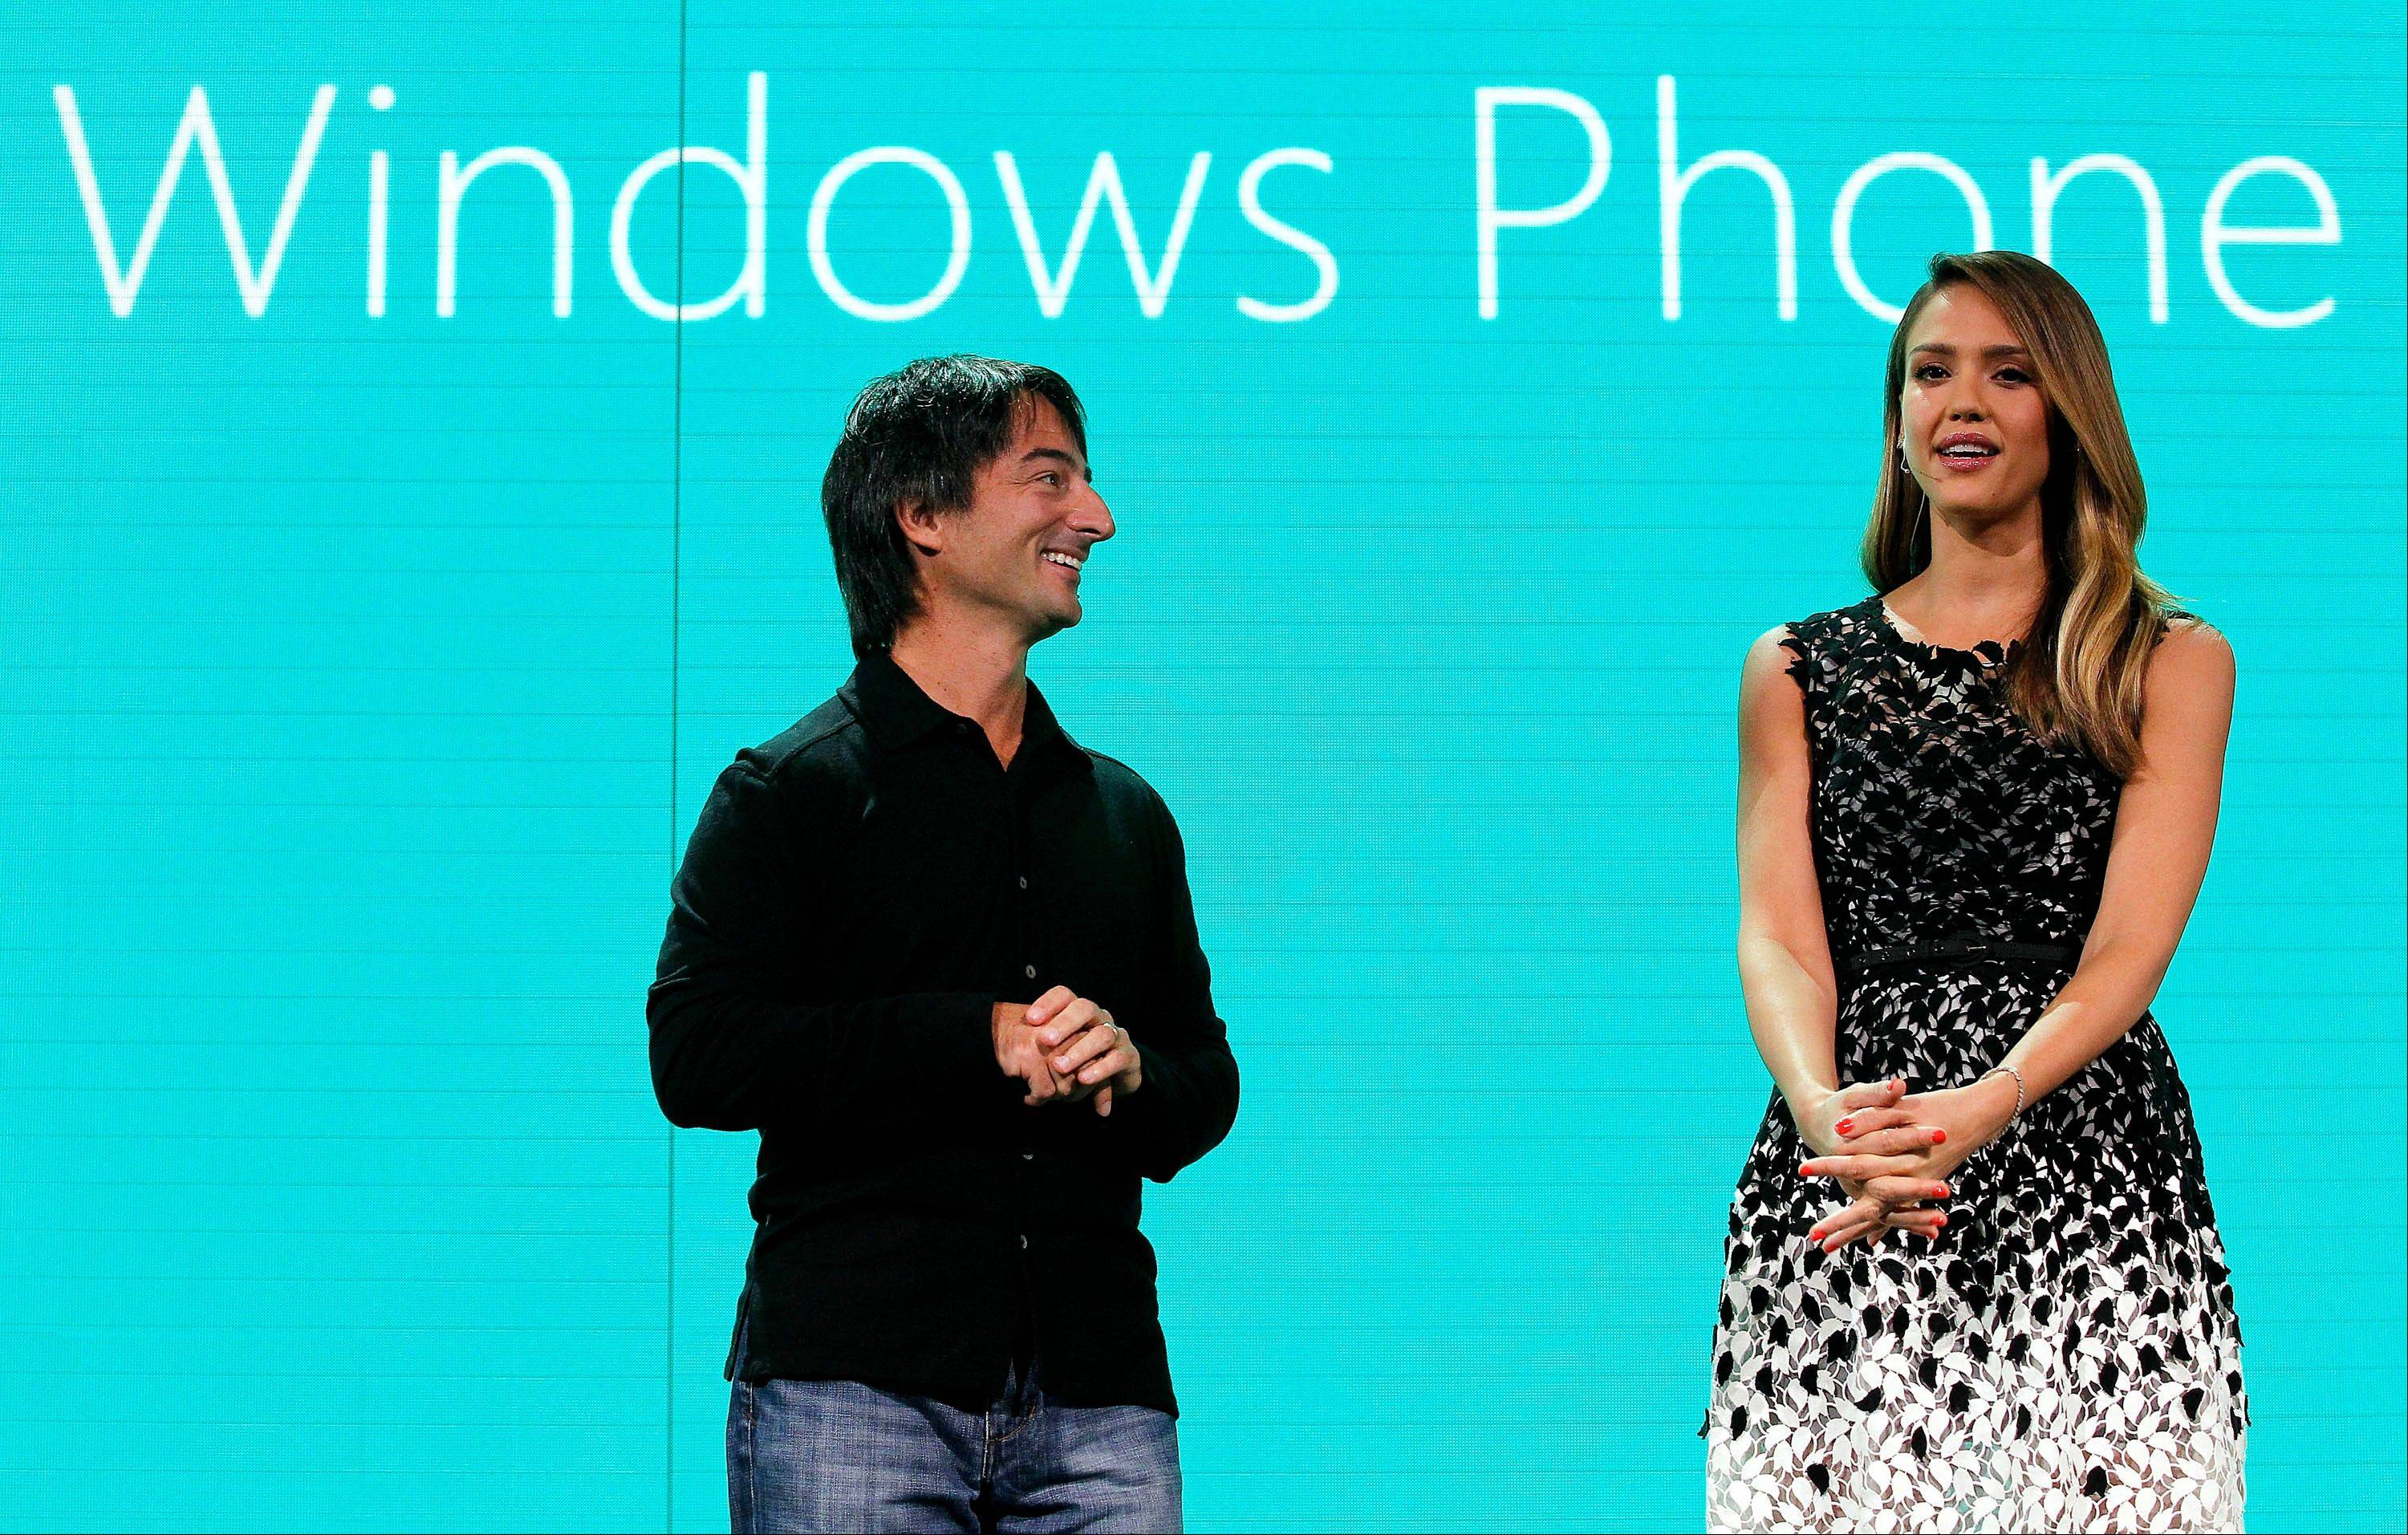 Joe Belfiore, vice president at Microsoft Corp., left, listens to actress Jessica Alba speak Monday at an event to unveil Windows Phone 8 software in San Francisco, California.